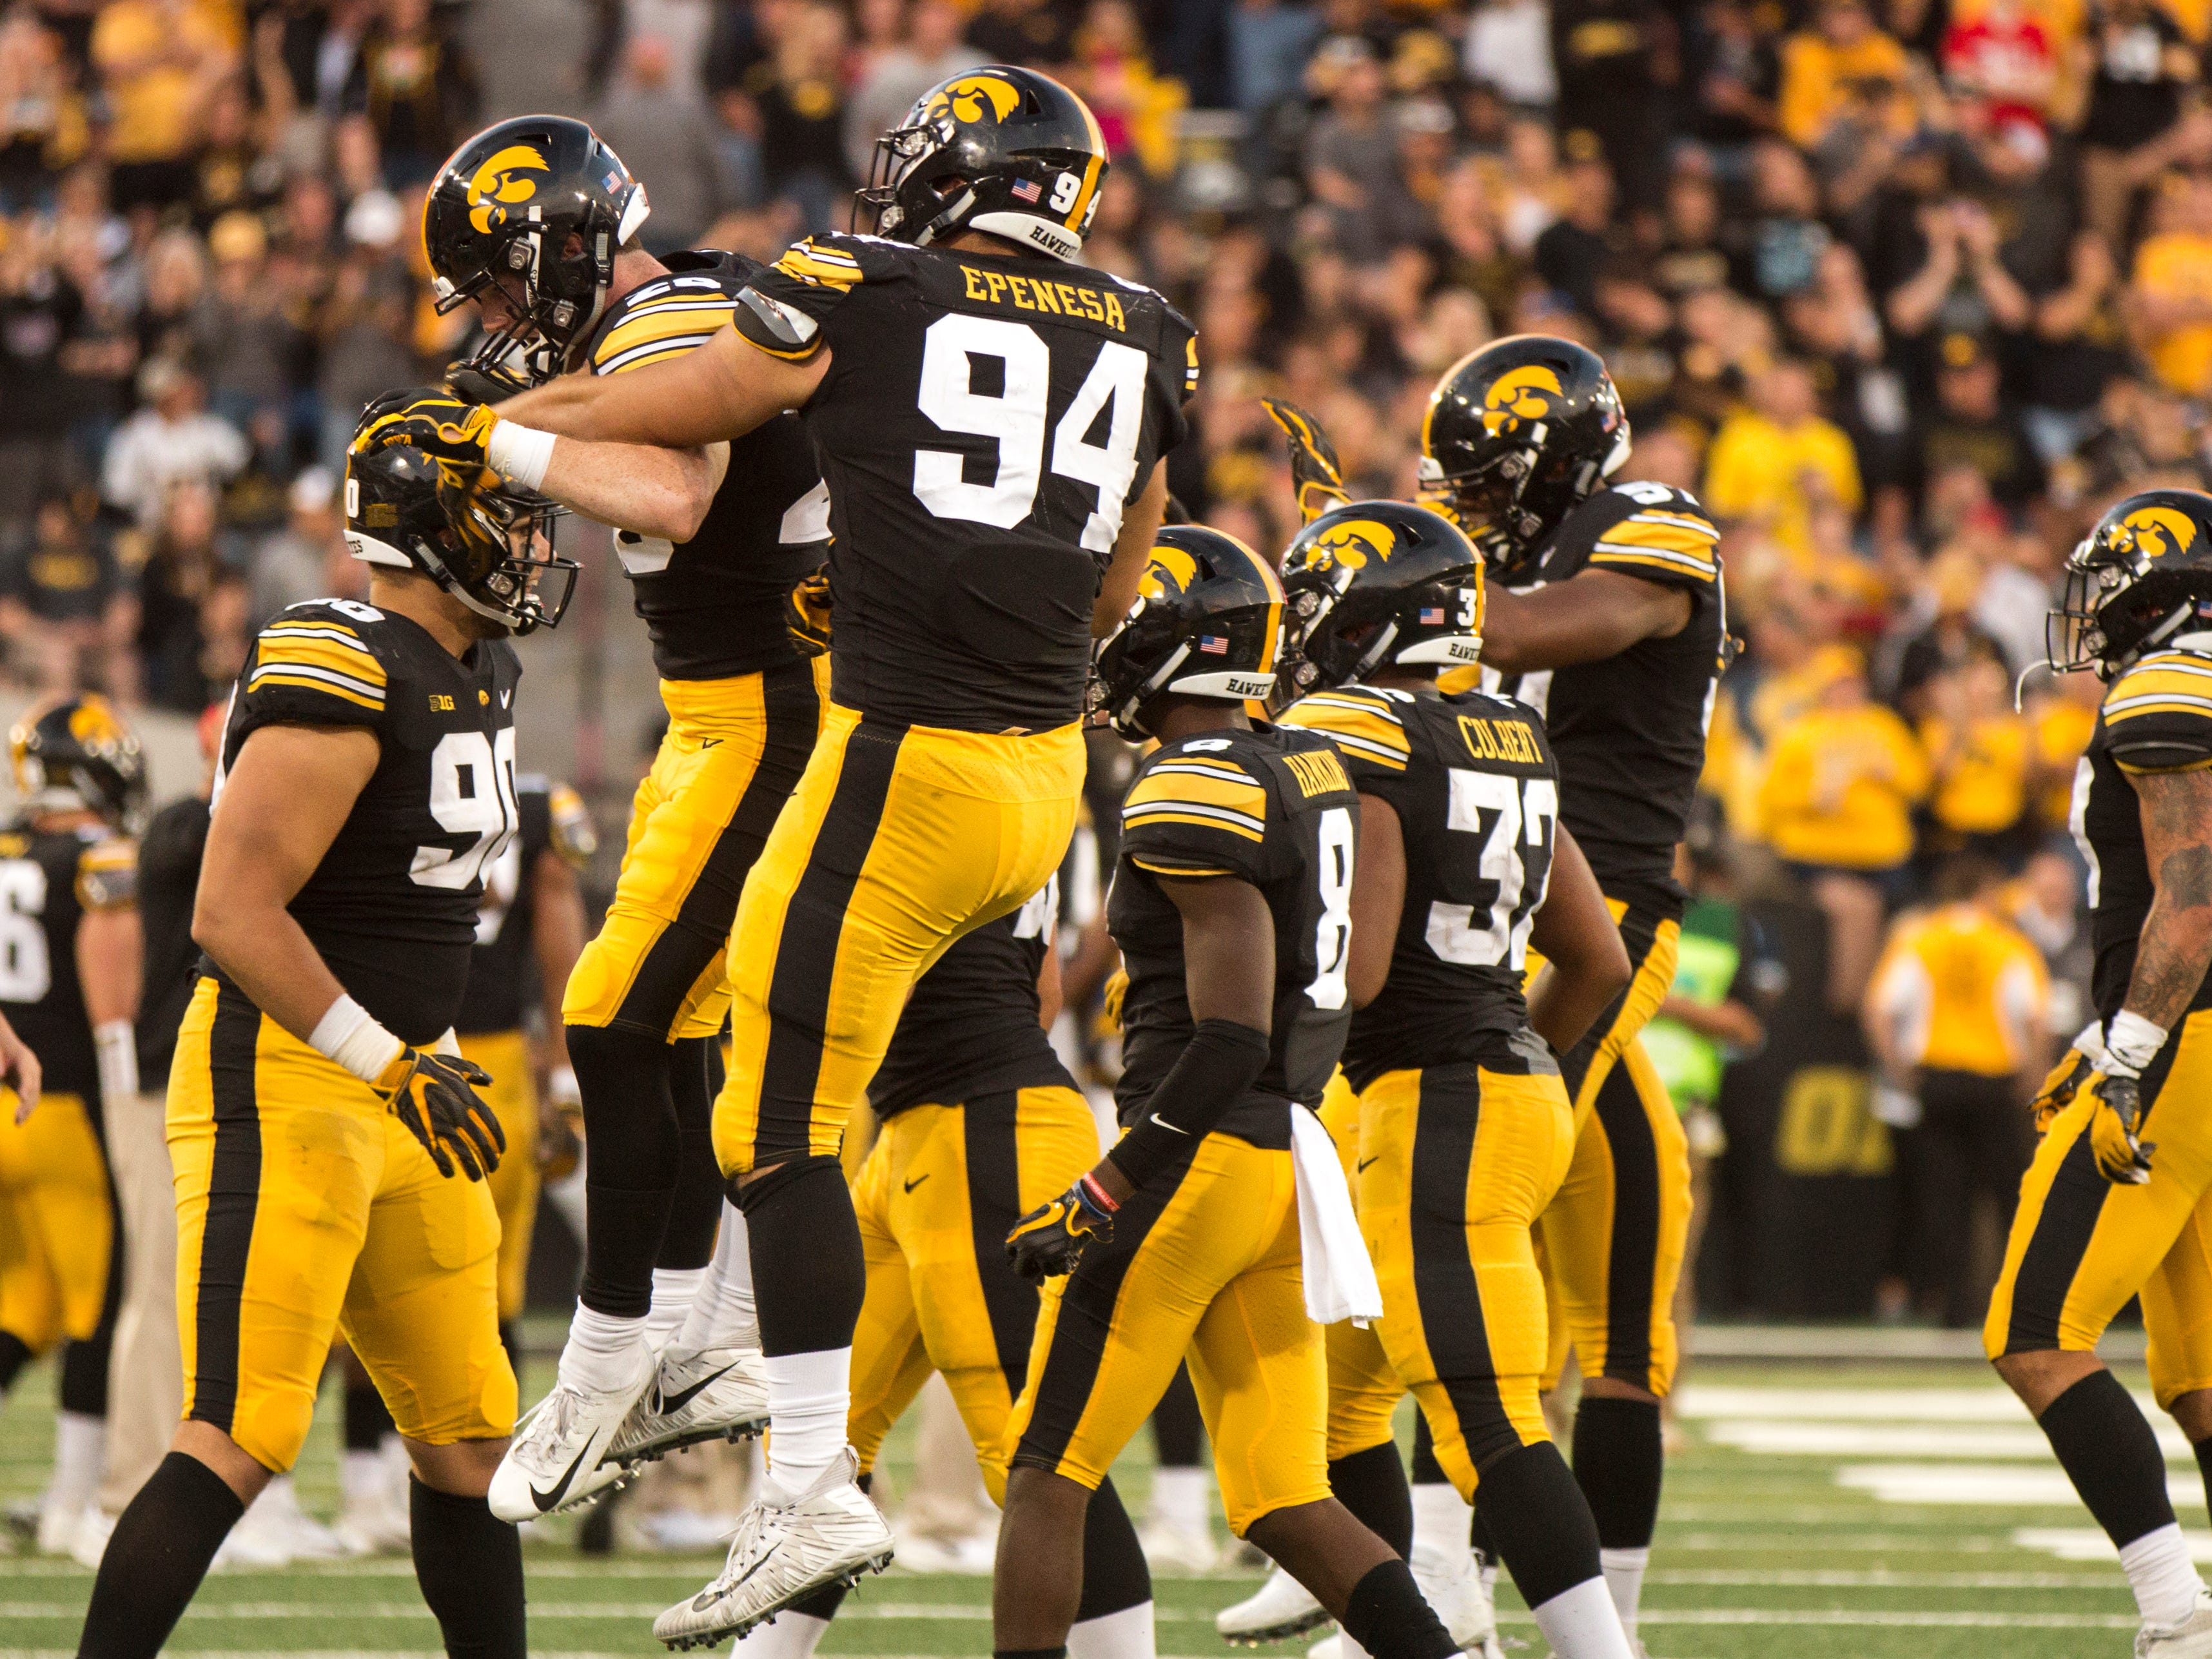 Iowa defensive end A.J. Epenesa (94) celebrates with teammates after forcing a fumble during the Cy-Hawk NCAA football game on Saturday, Sept. 8, 2018, at Kinnick Stadium in Iowa City.